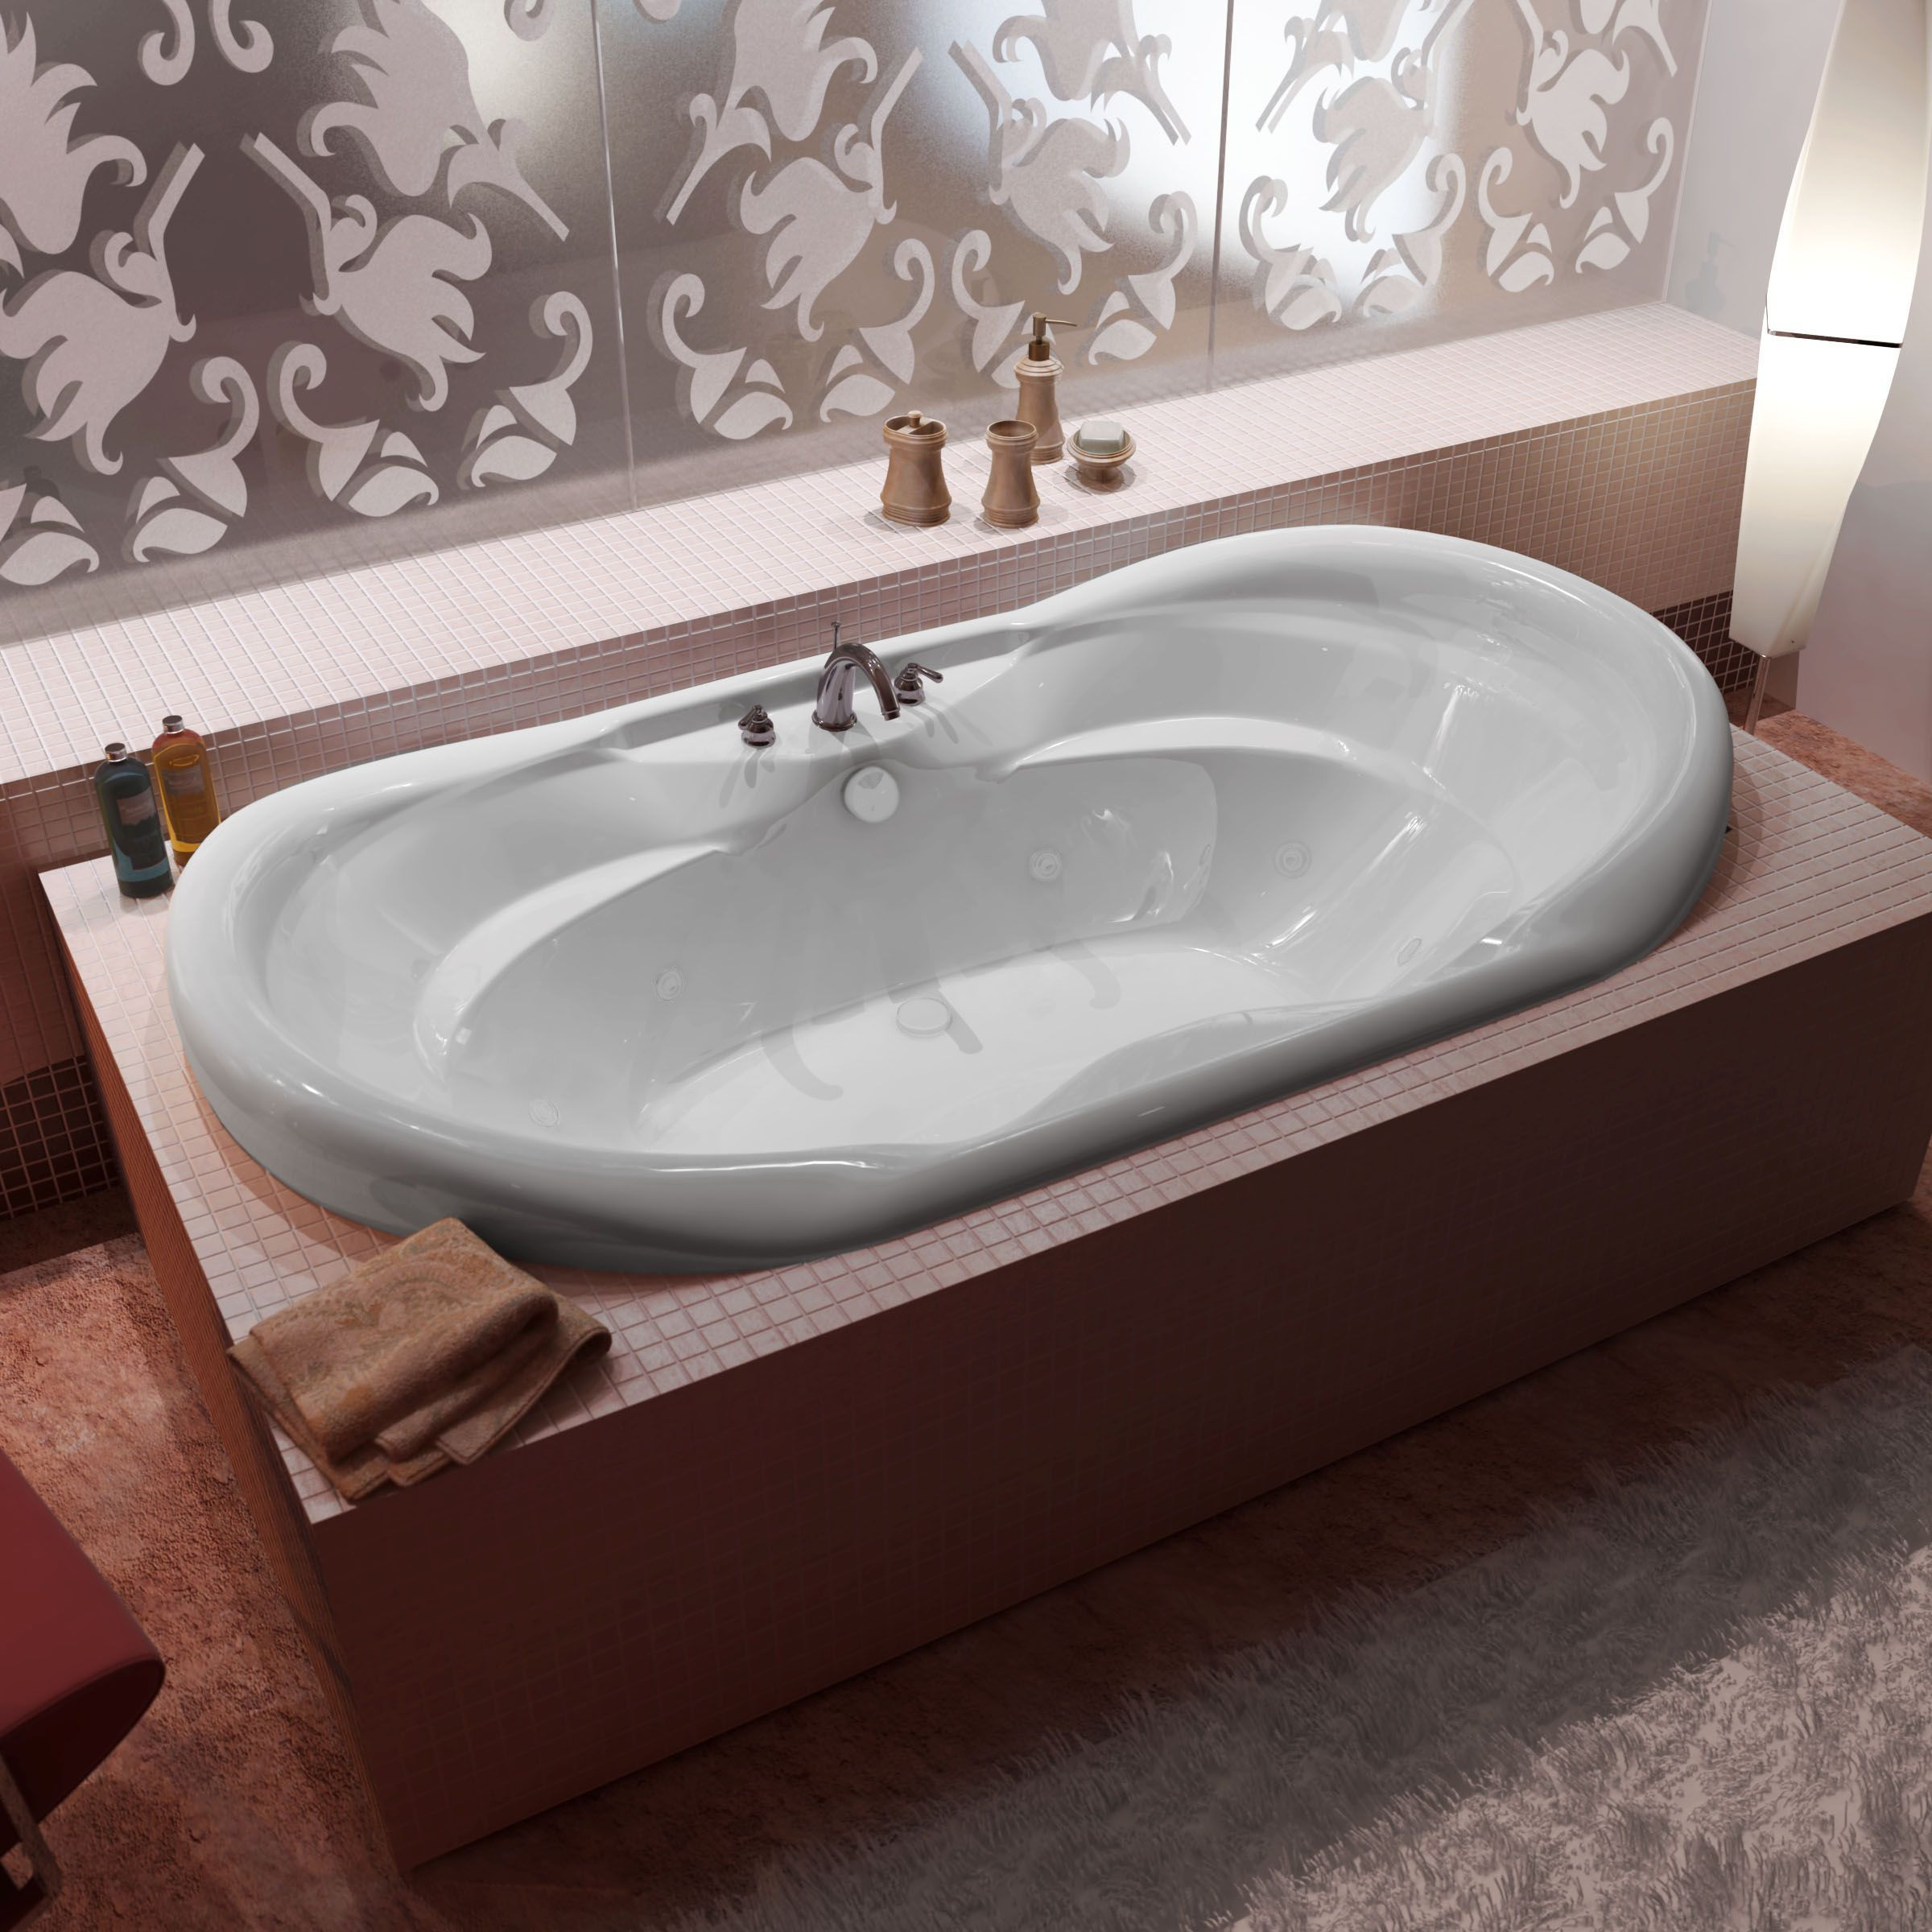 Attractive Mountain Home Bison 41x70 Inch Acrylic Whirlpool Jetted Drop In Bathtub  (41x70,